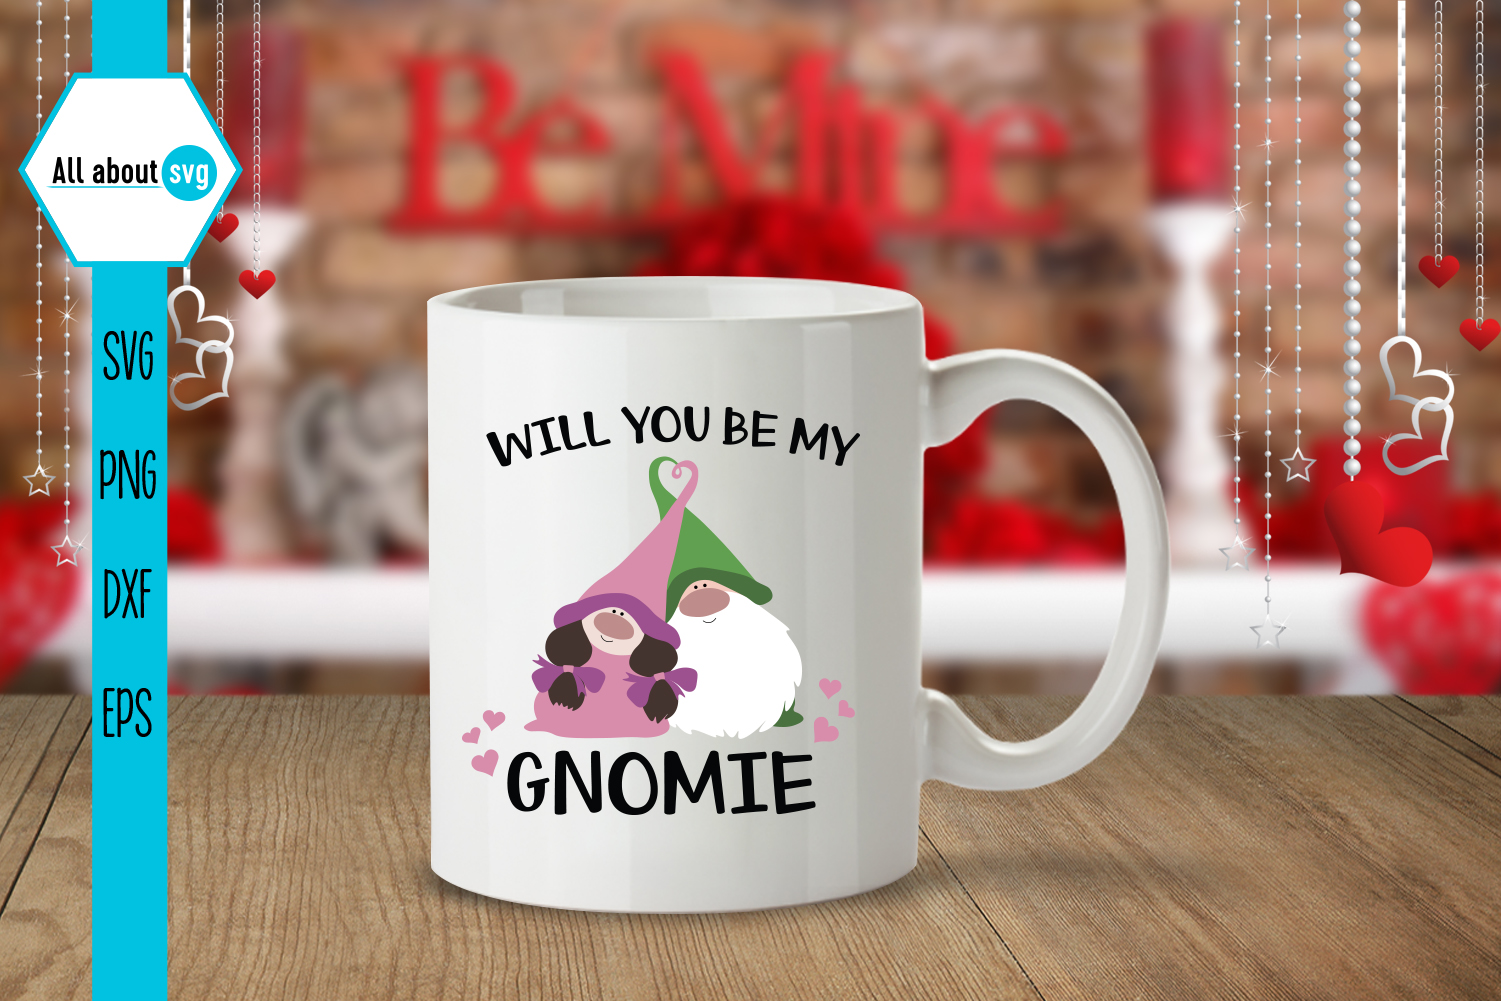 Will You Be My Gnomie Svg, Valentine's Gnomies Svg example image 4